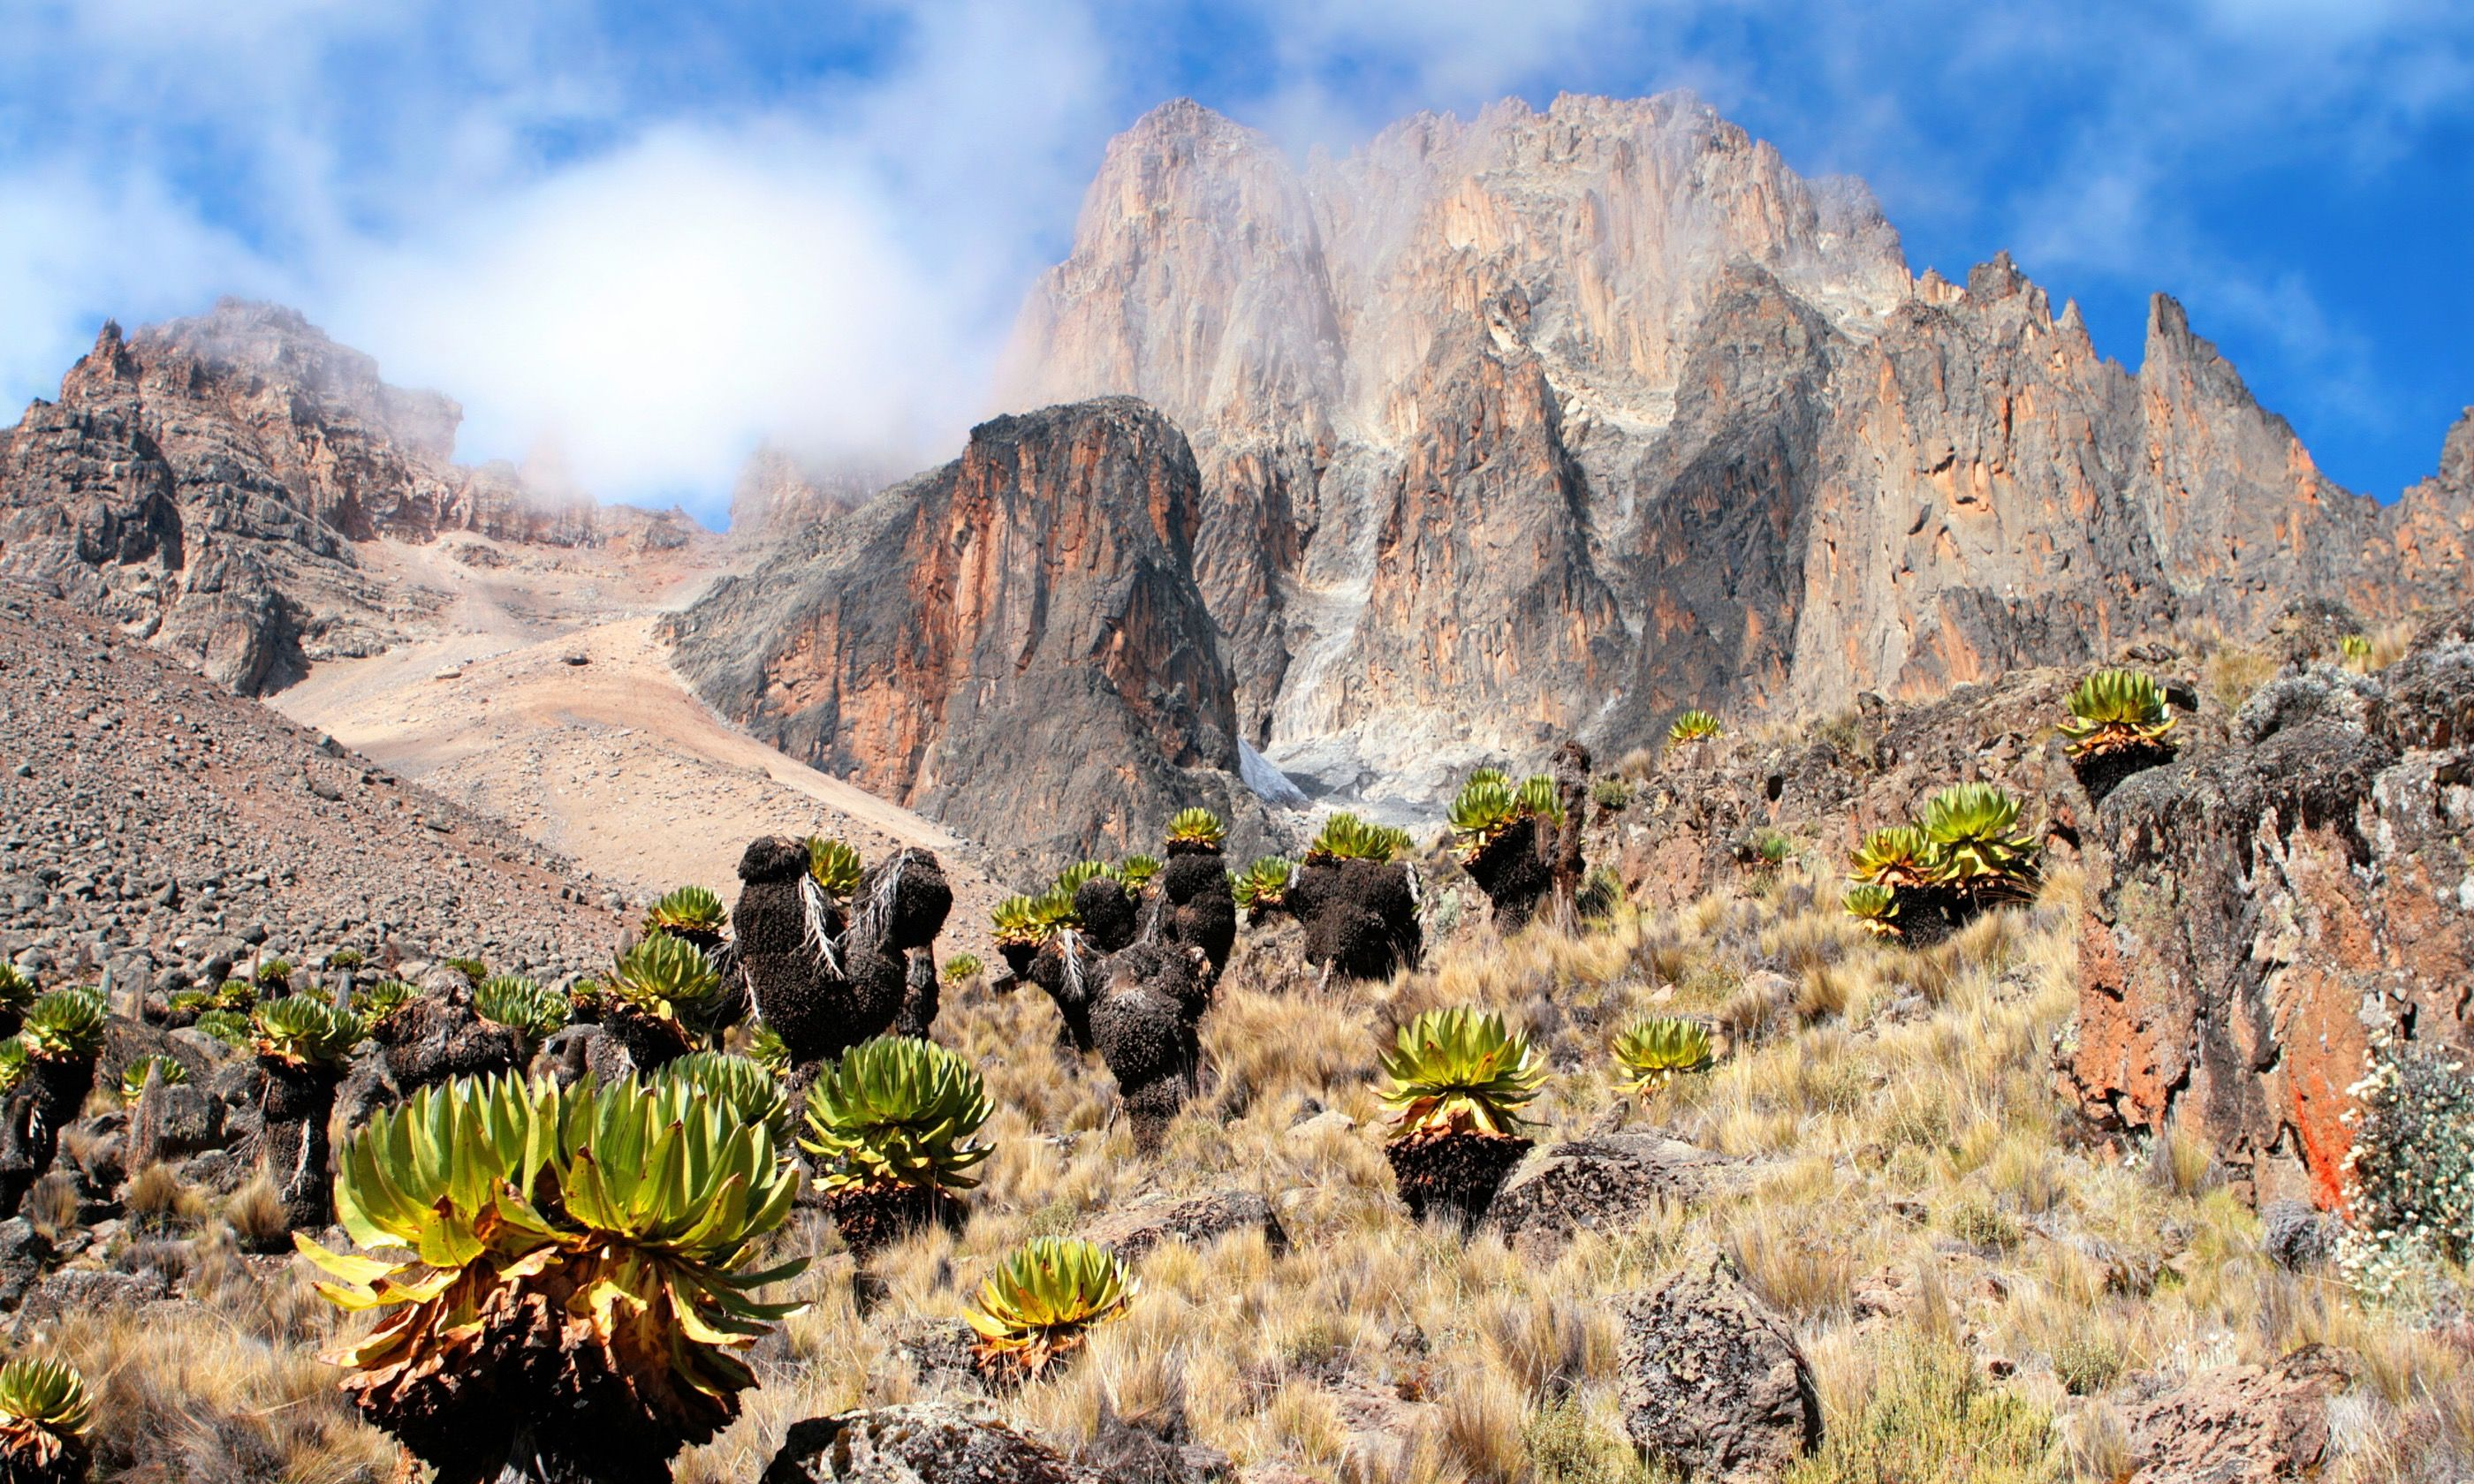 Mount Kenya. Via ferrata not shown. (Dreamstime)